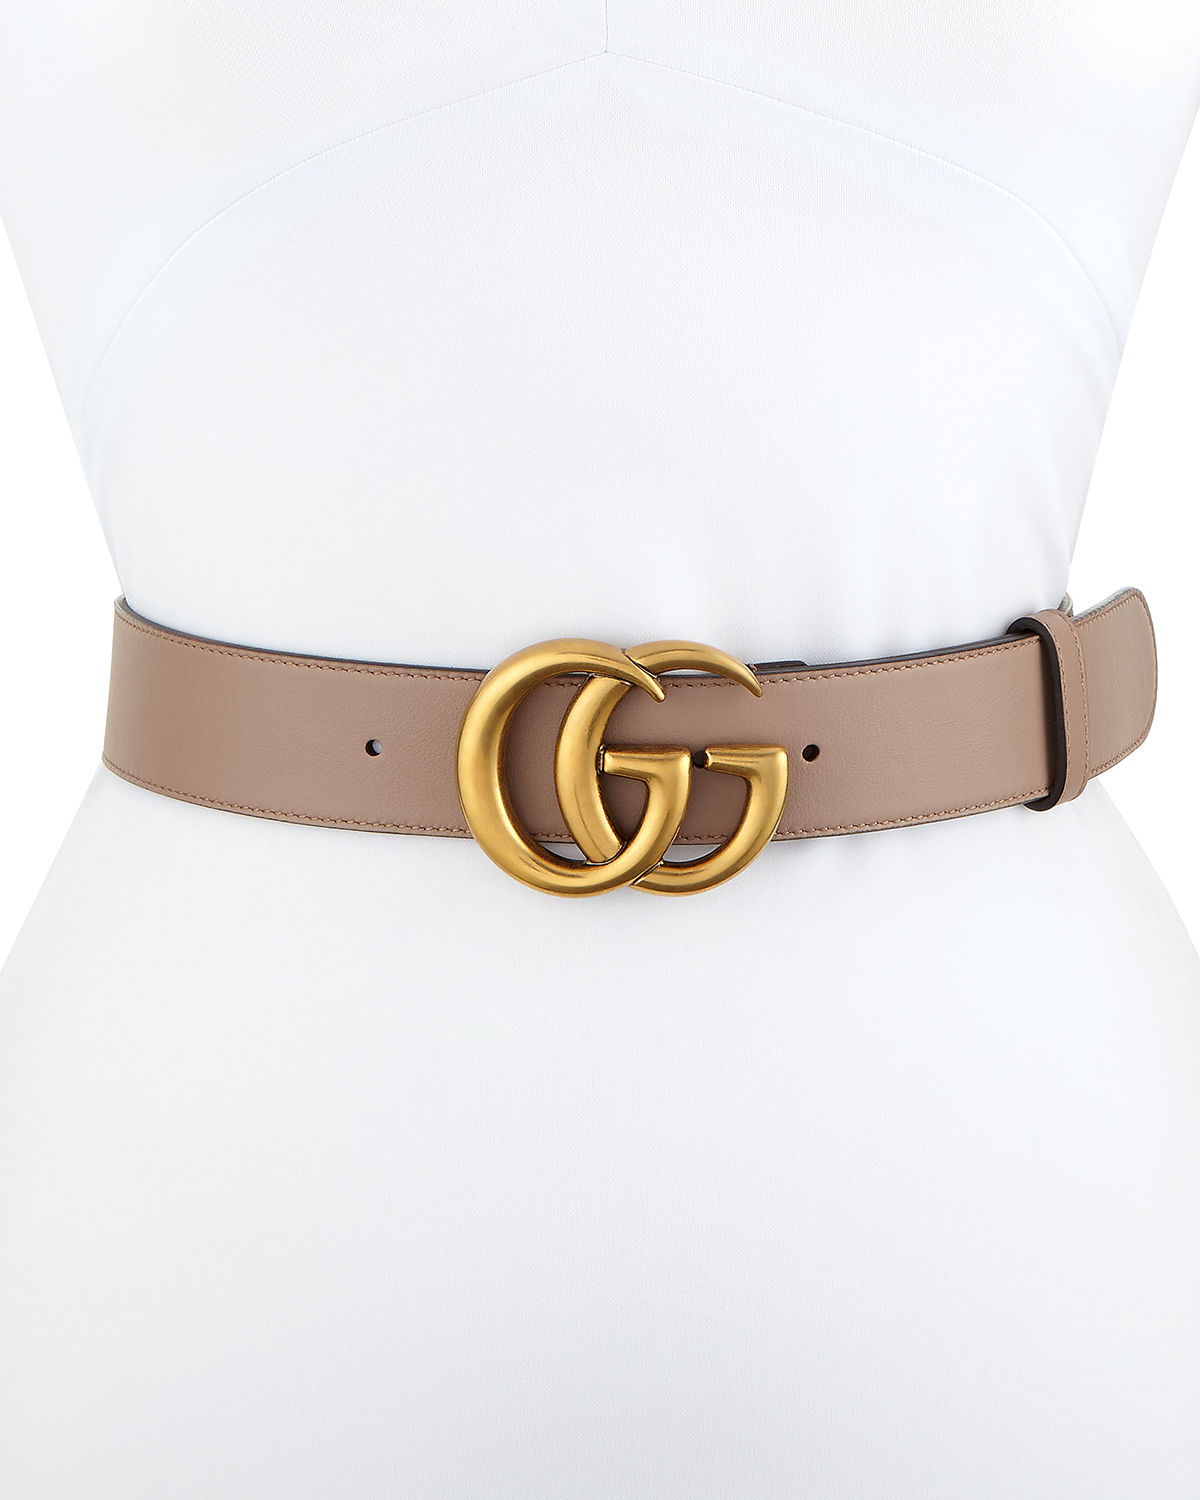 87bb2757db7 Gucci Leather Belt with GG Buckle